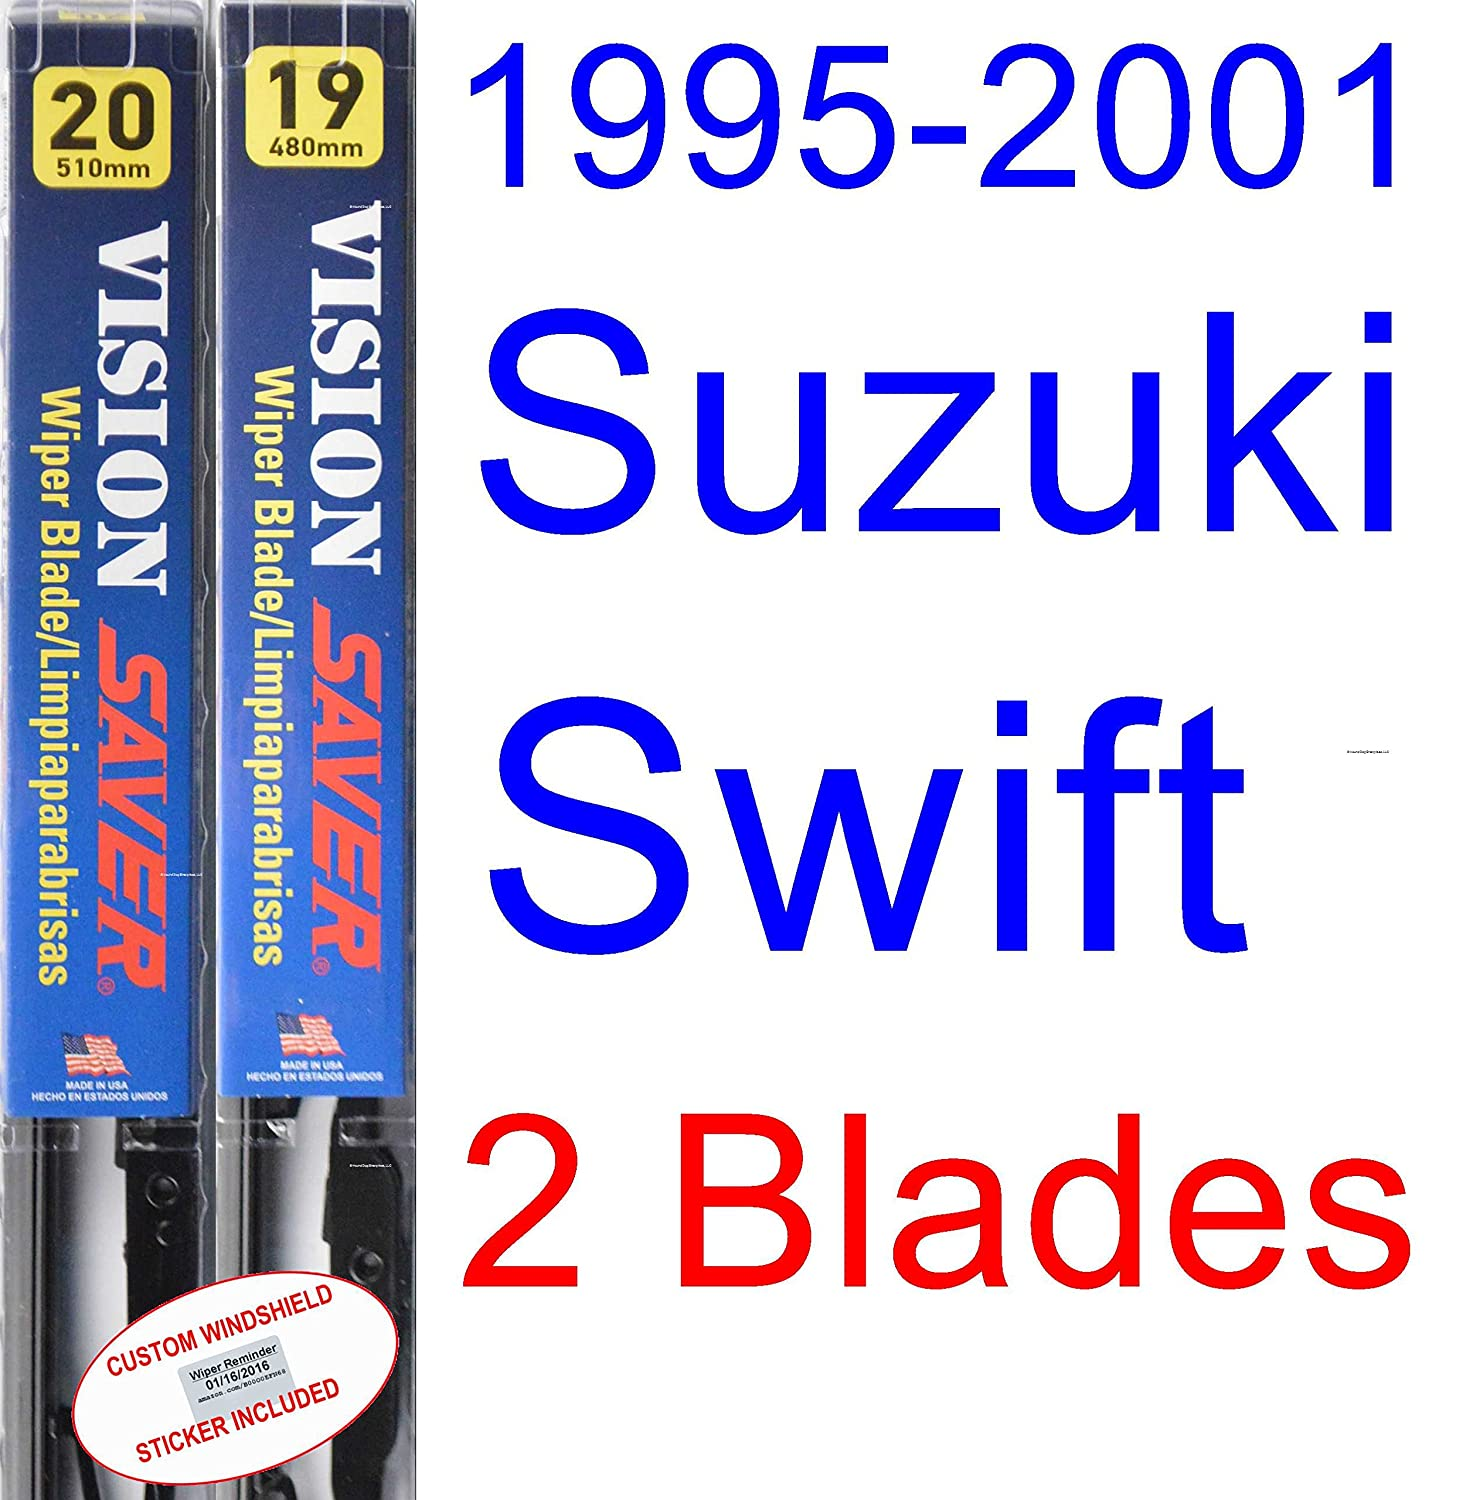 Amazon.com: 1995-2001 Suzuki Swift Wiper Blade (Driver) (Saver Automotive Products-Vision Saver) (1996,1997,1998,1999,2000): Automotive